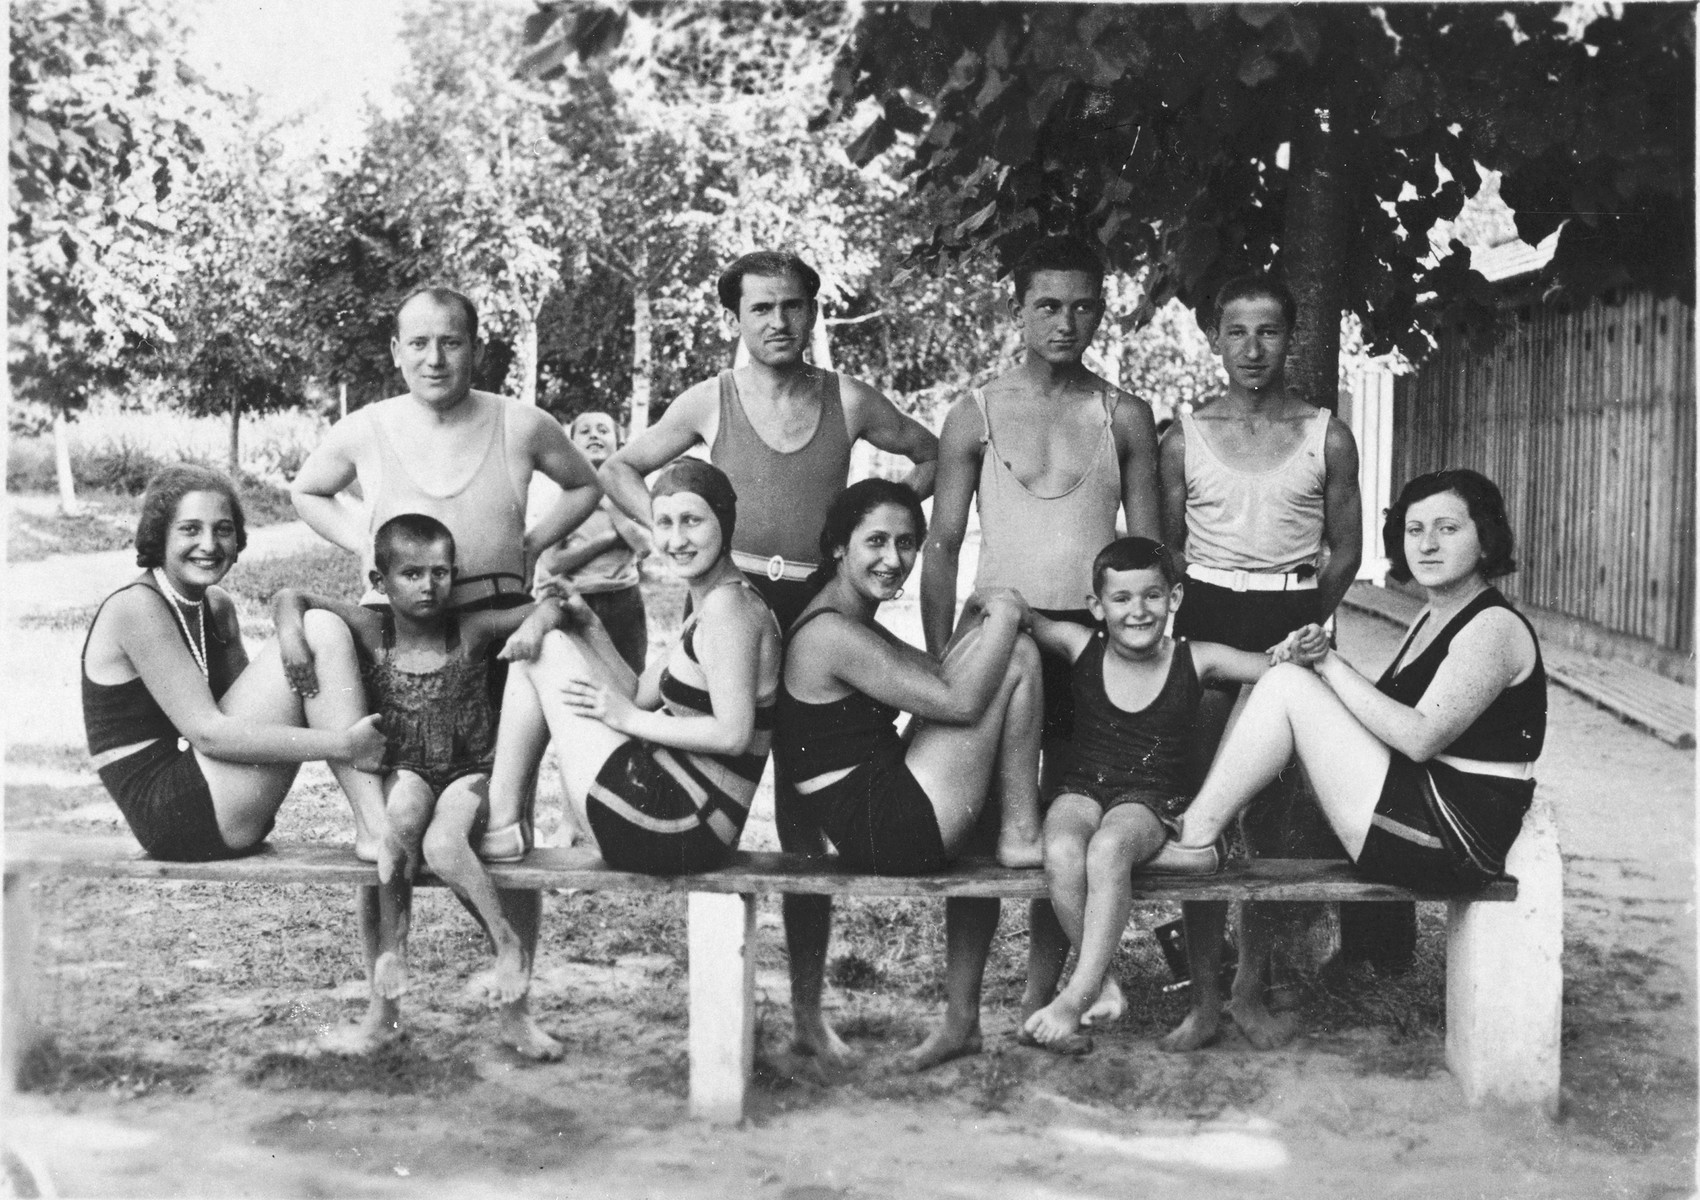 Group portrait of Jewish friends wearing bathing suits at a swimming pool in Kalocsa, Hungary.